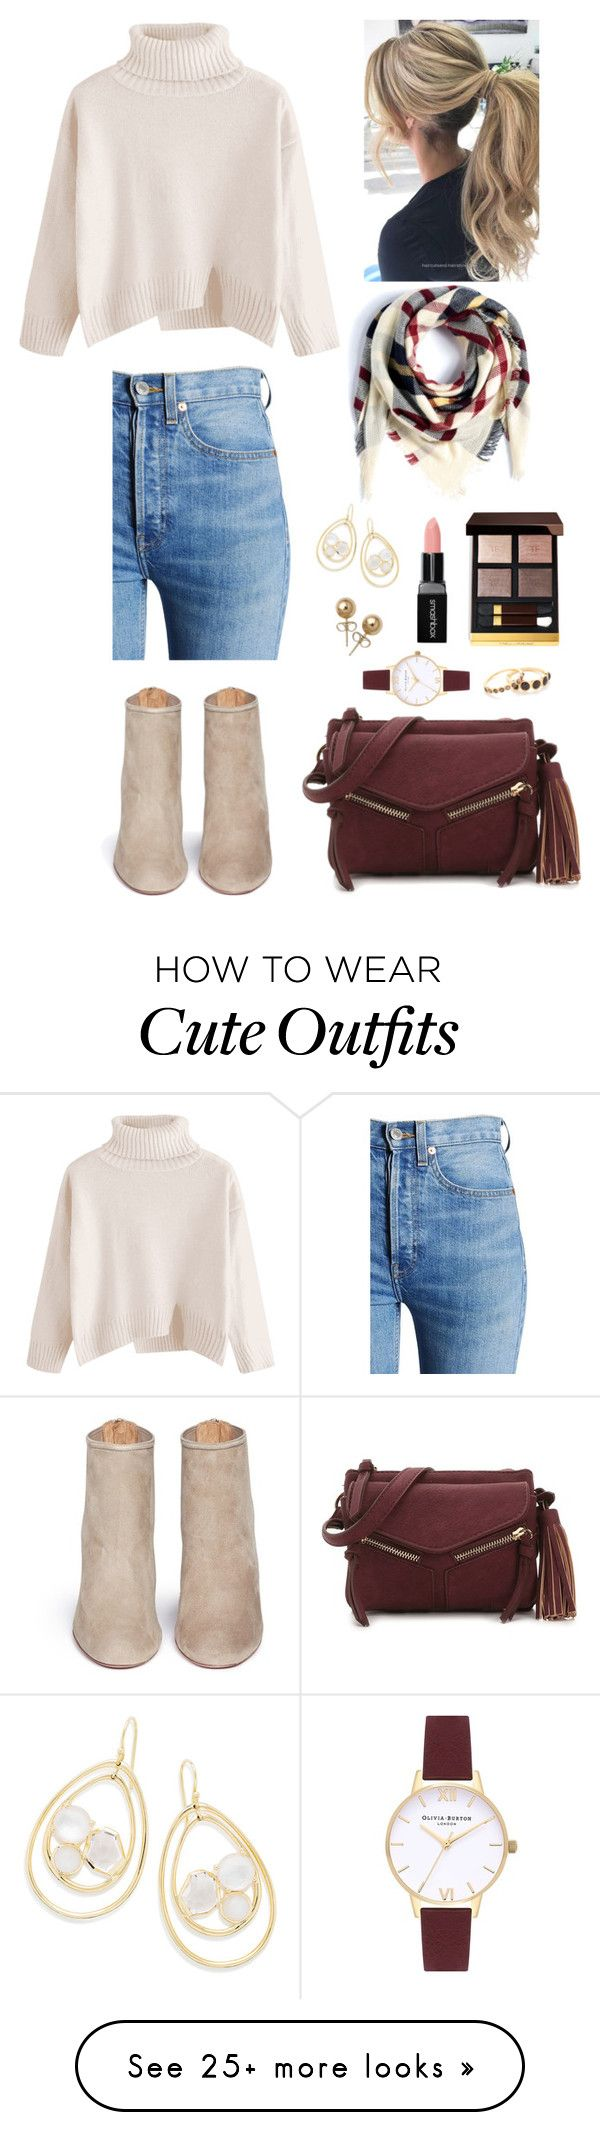 """Thanksgiving Outfit"" by youareoriginal on Polyvore featuring RE/DONE, Aquazzura, Ippolita, Eloquii, Violet Ray, Gorjana, Olivia Burton, Bling Jewelry, Tom Ford and Smashbox"